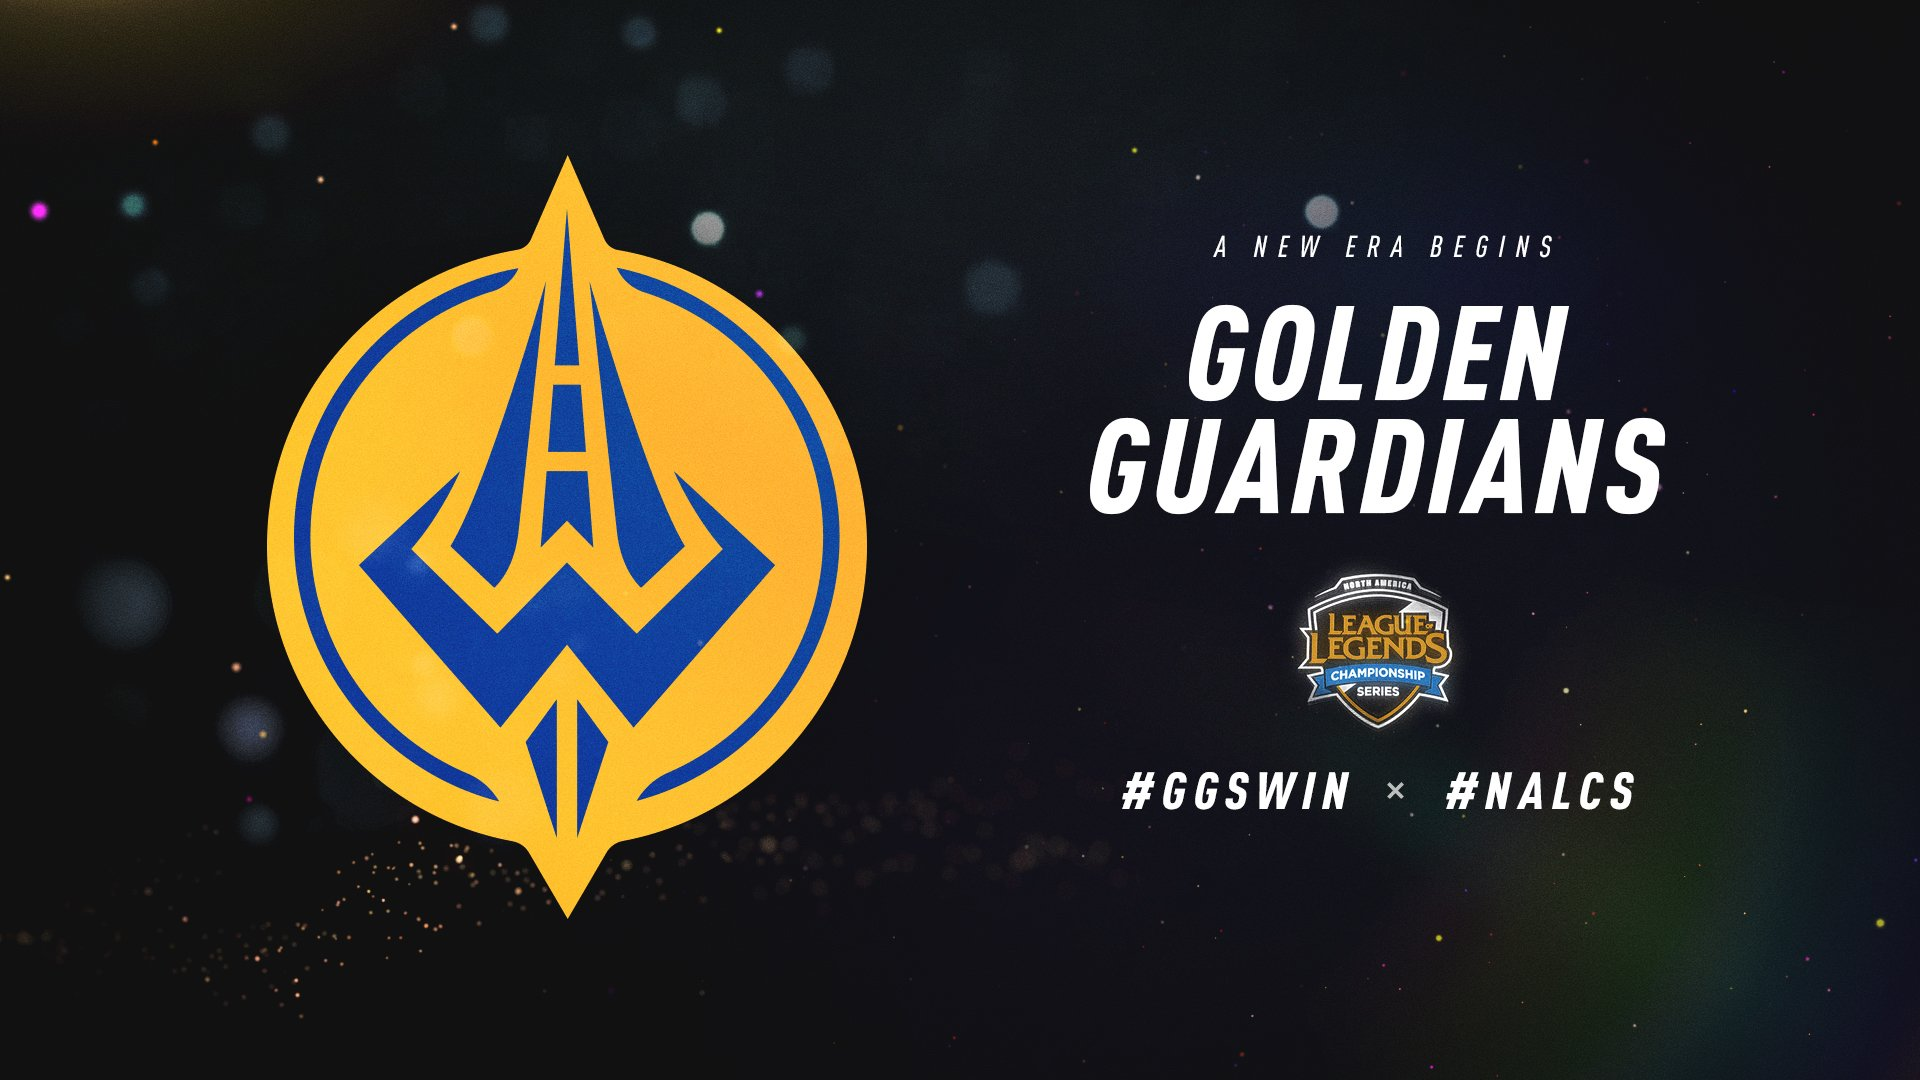 .@GoldenGuardians to Compete in North American League of Legends Championship Series https://t.co/yT9CFG3RfO https://t.co/NWD2kR7UkK